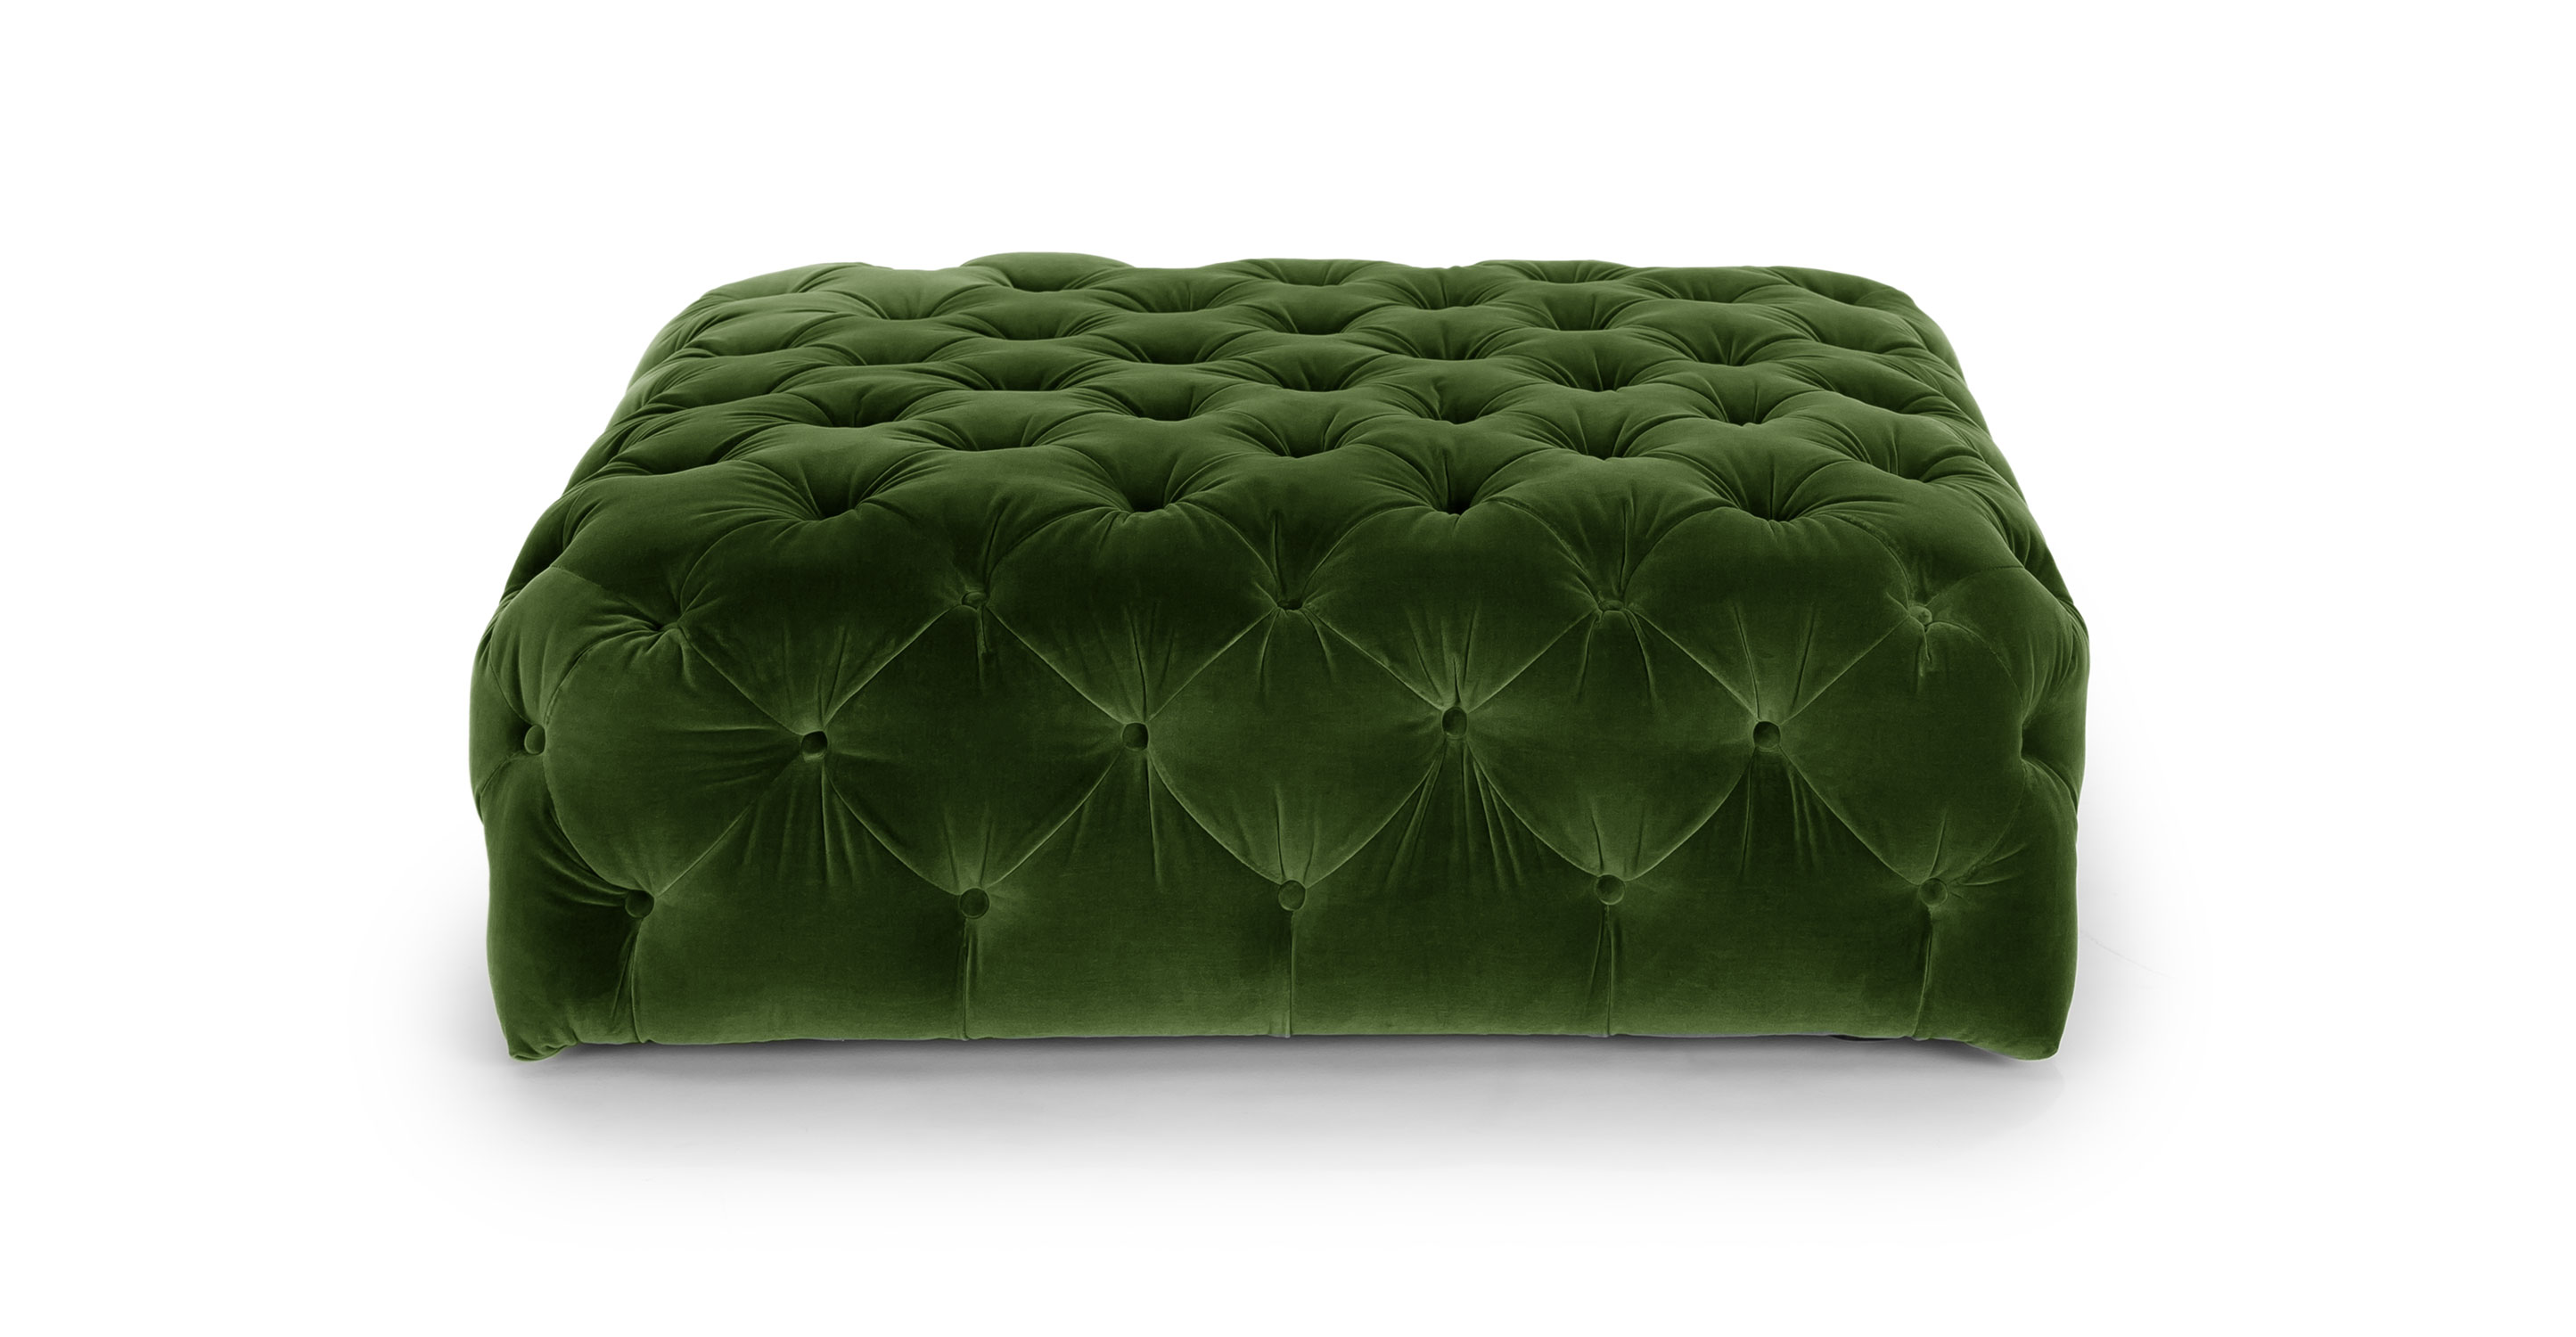 Tufted Storage Ottoman Coffee Table